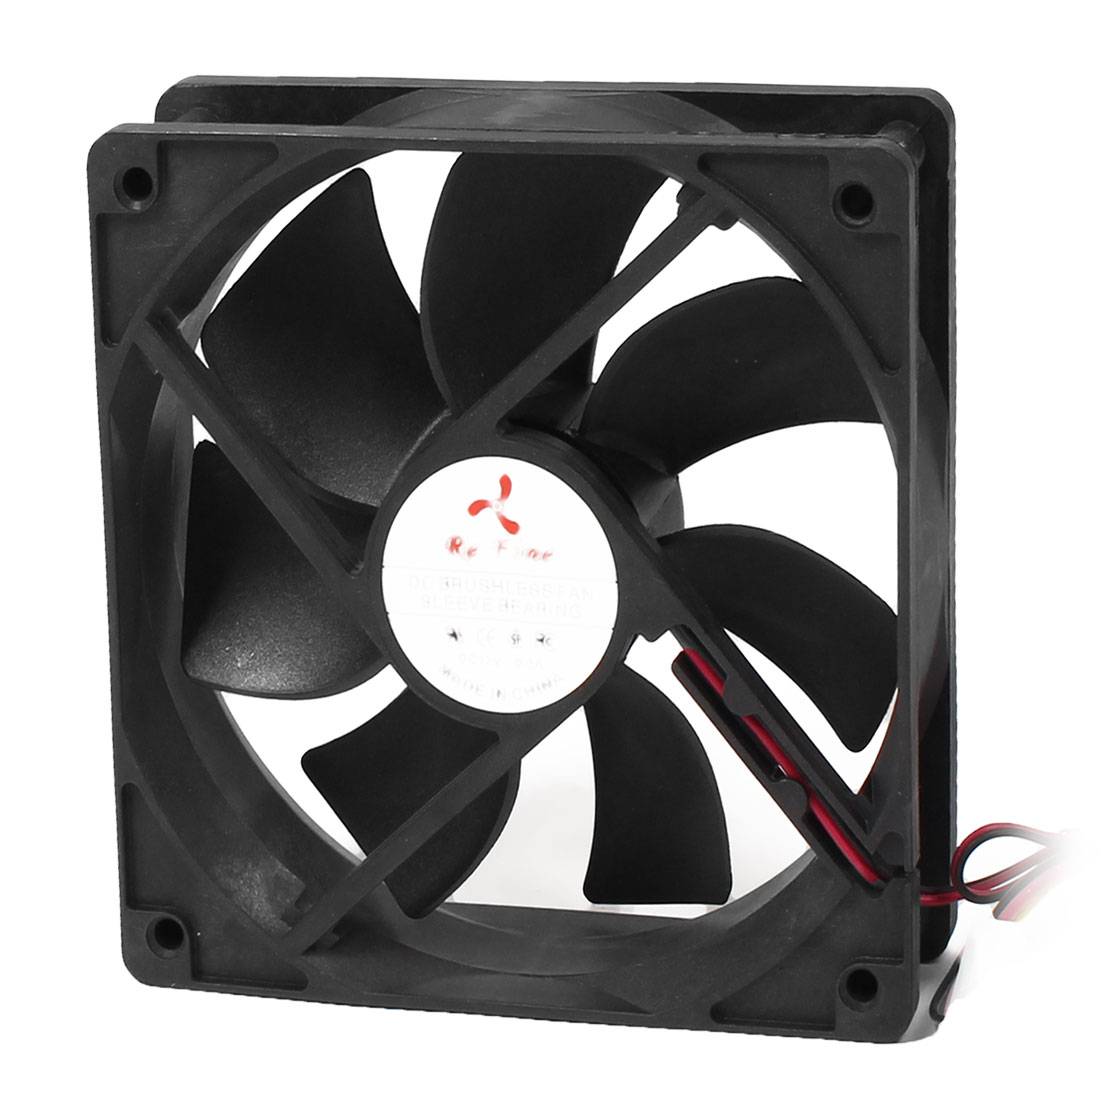 Computer PC Case 4 Pin Cool Cooler Cooling Fan 120mm x 120mm